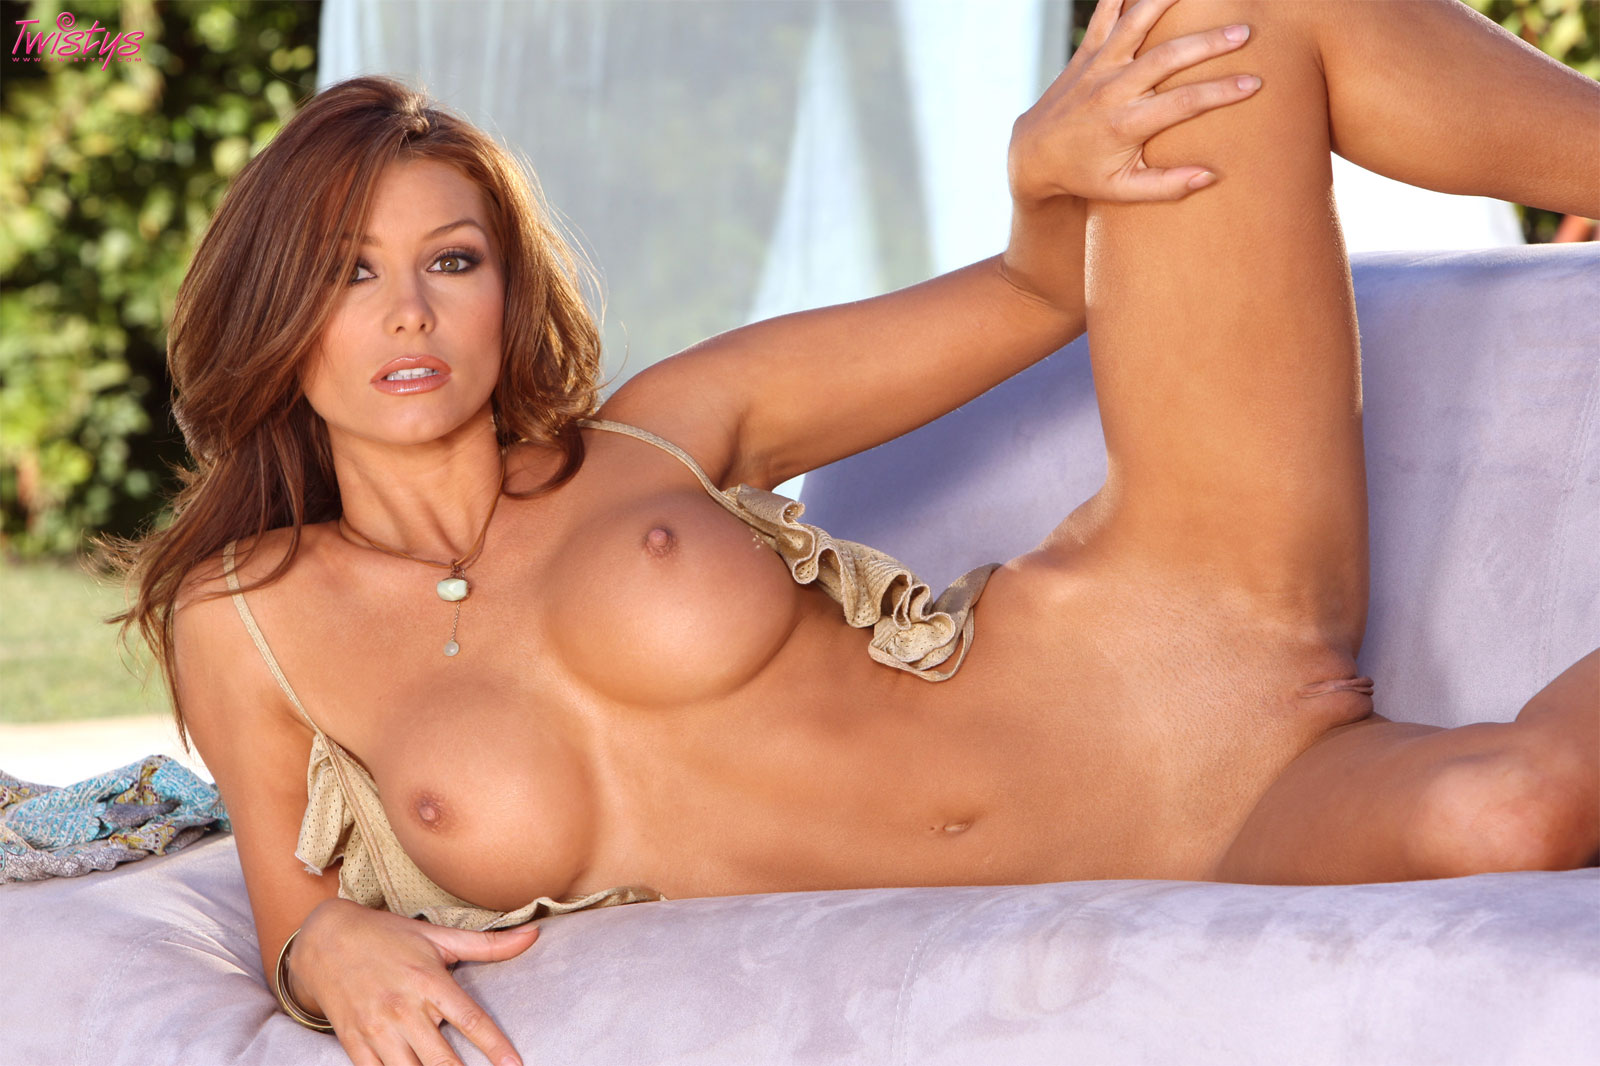 heather vandeven hardcore